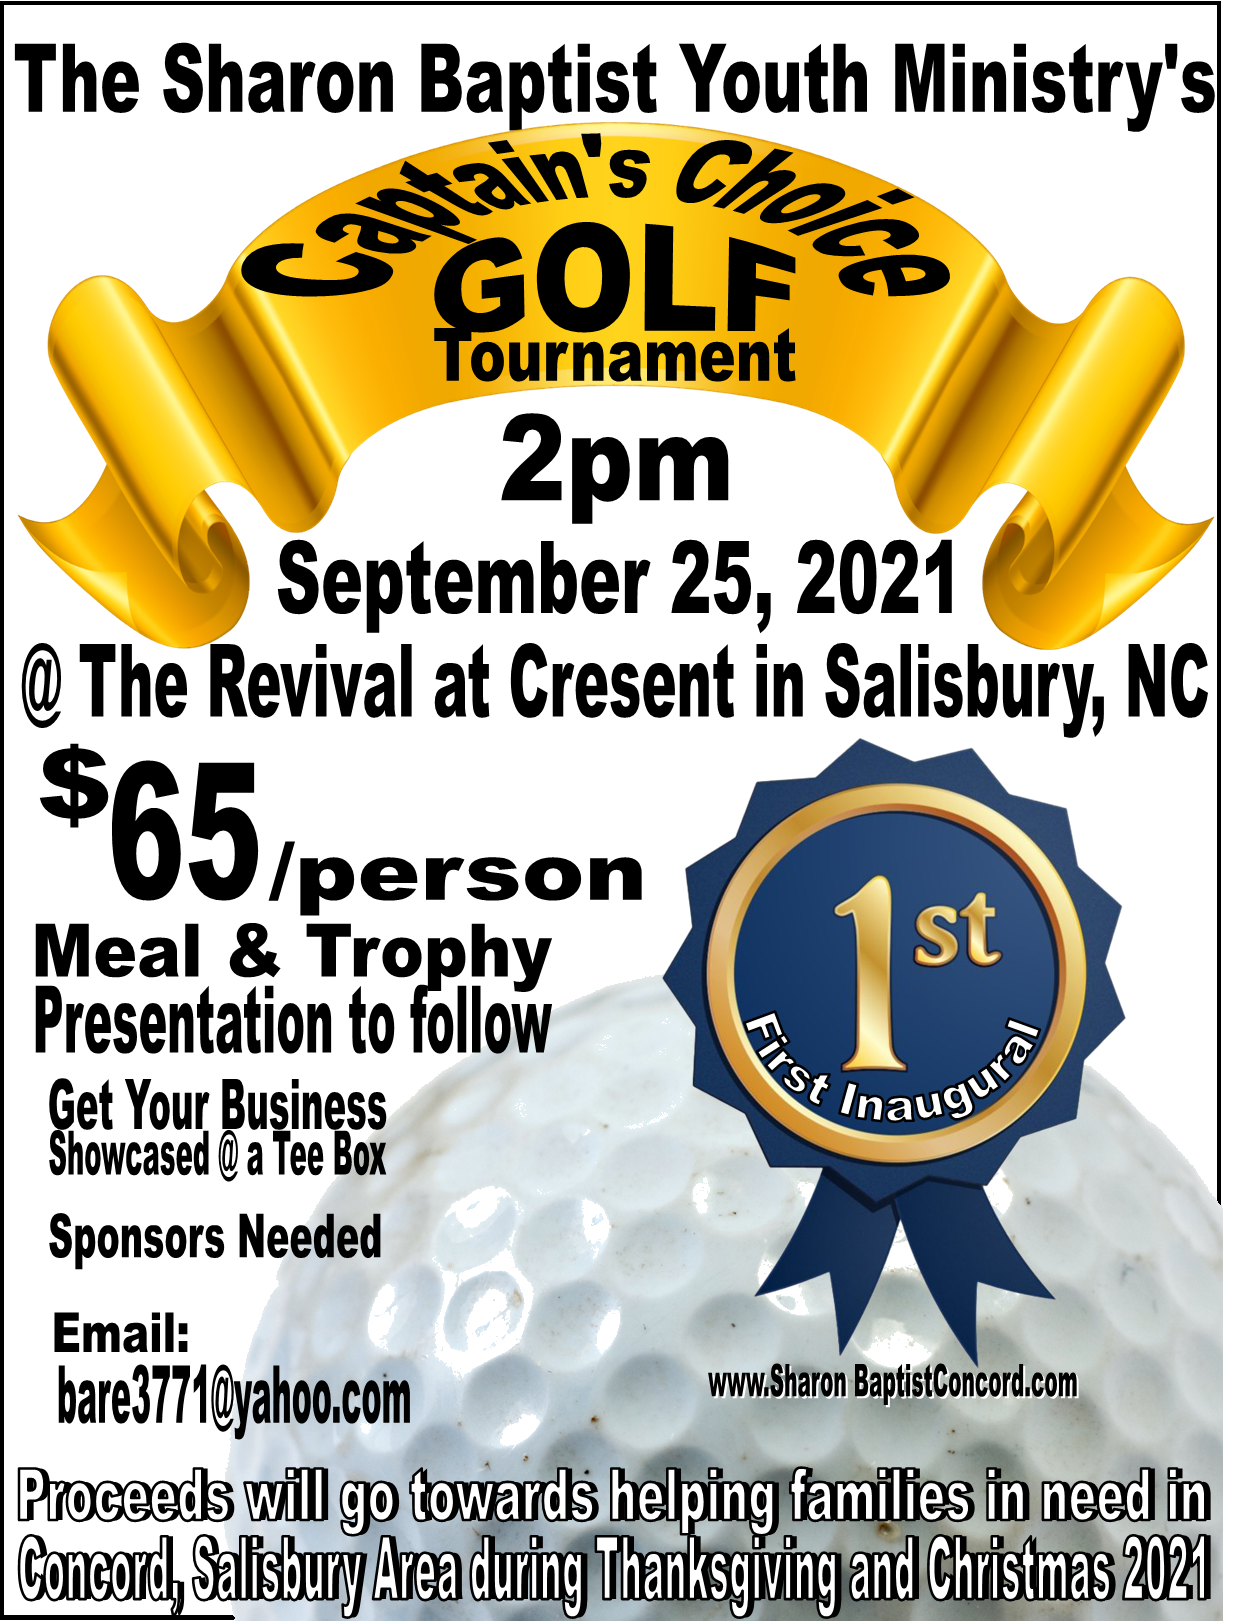 Sharon Youth Ministry Golf Tournament 2021